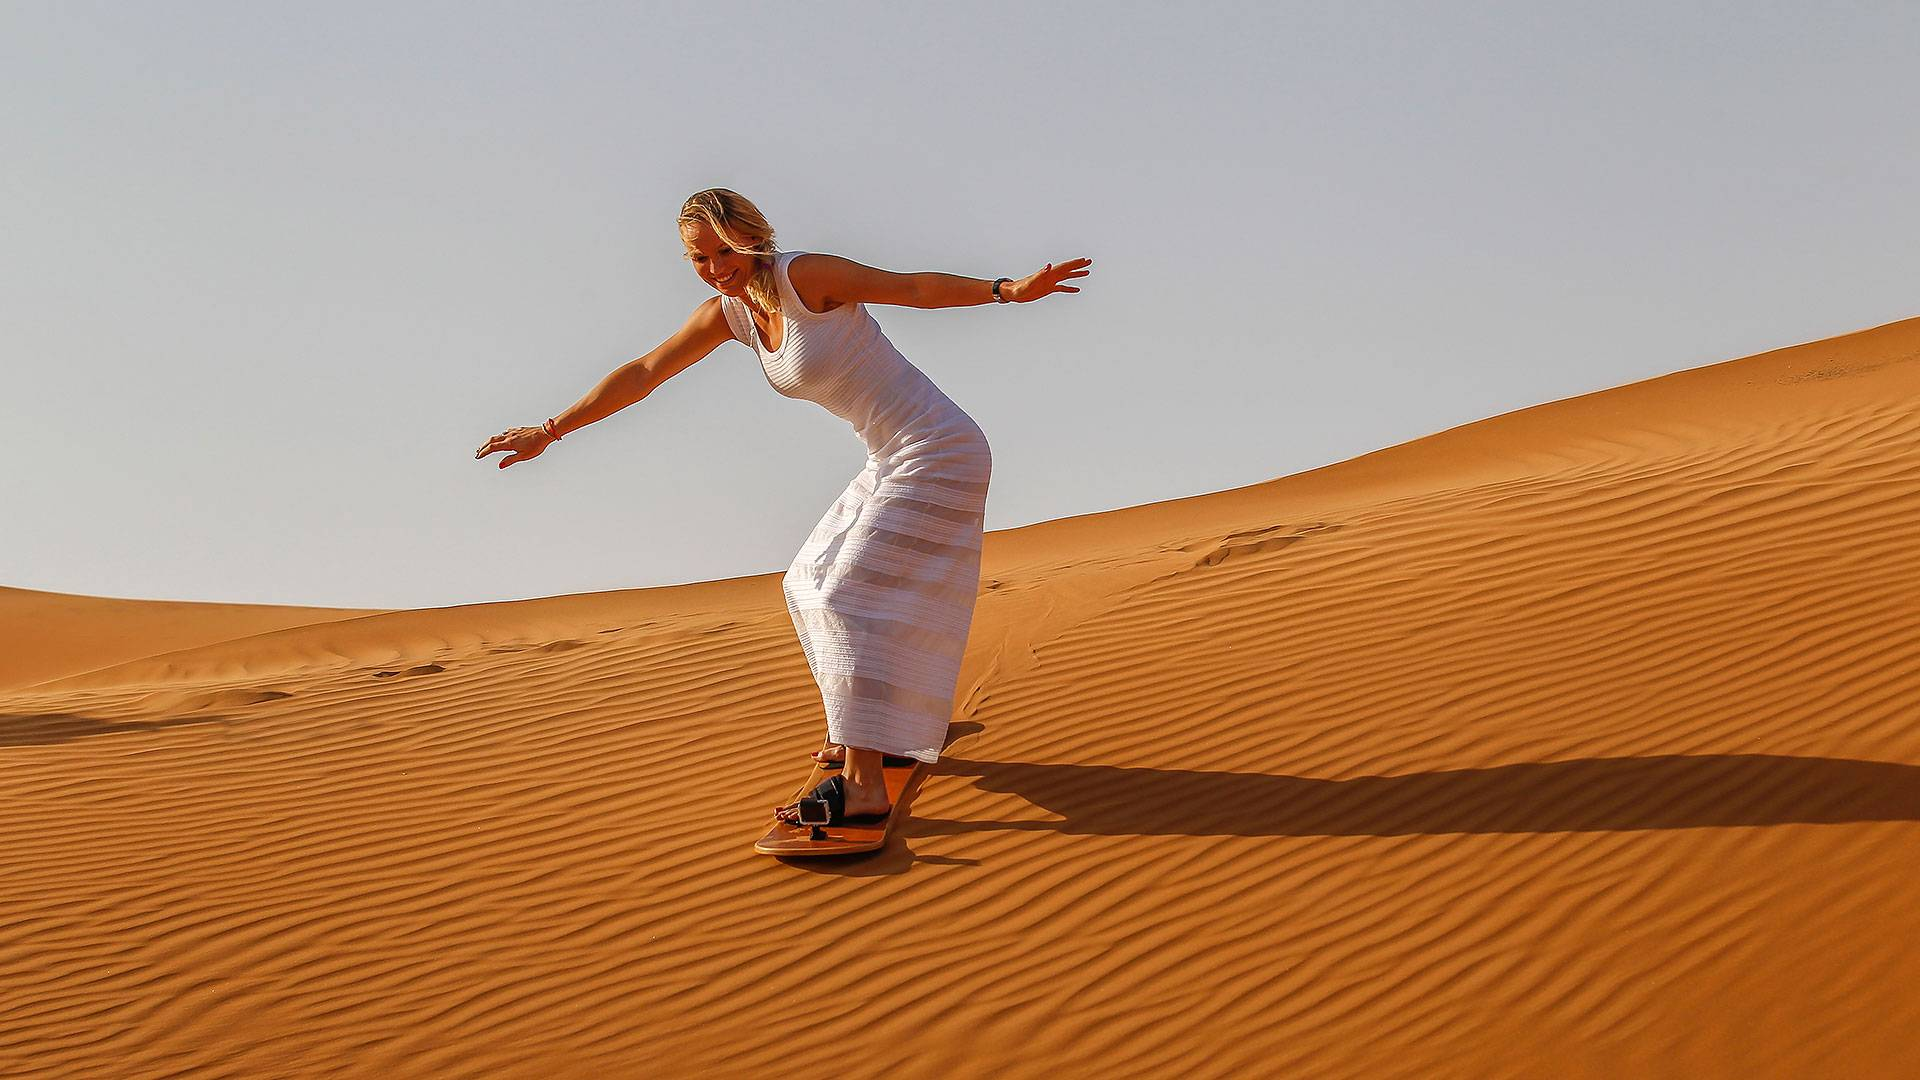 Sand Boarding in Merzouga